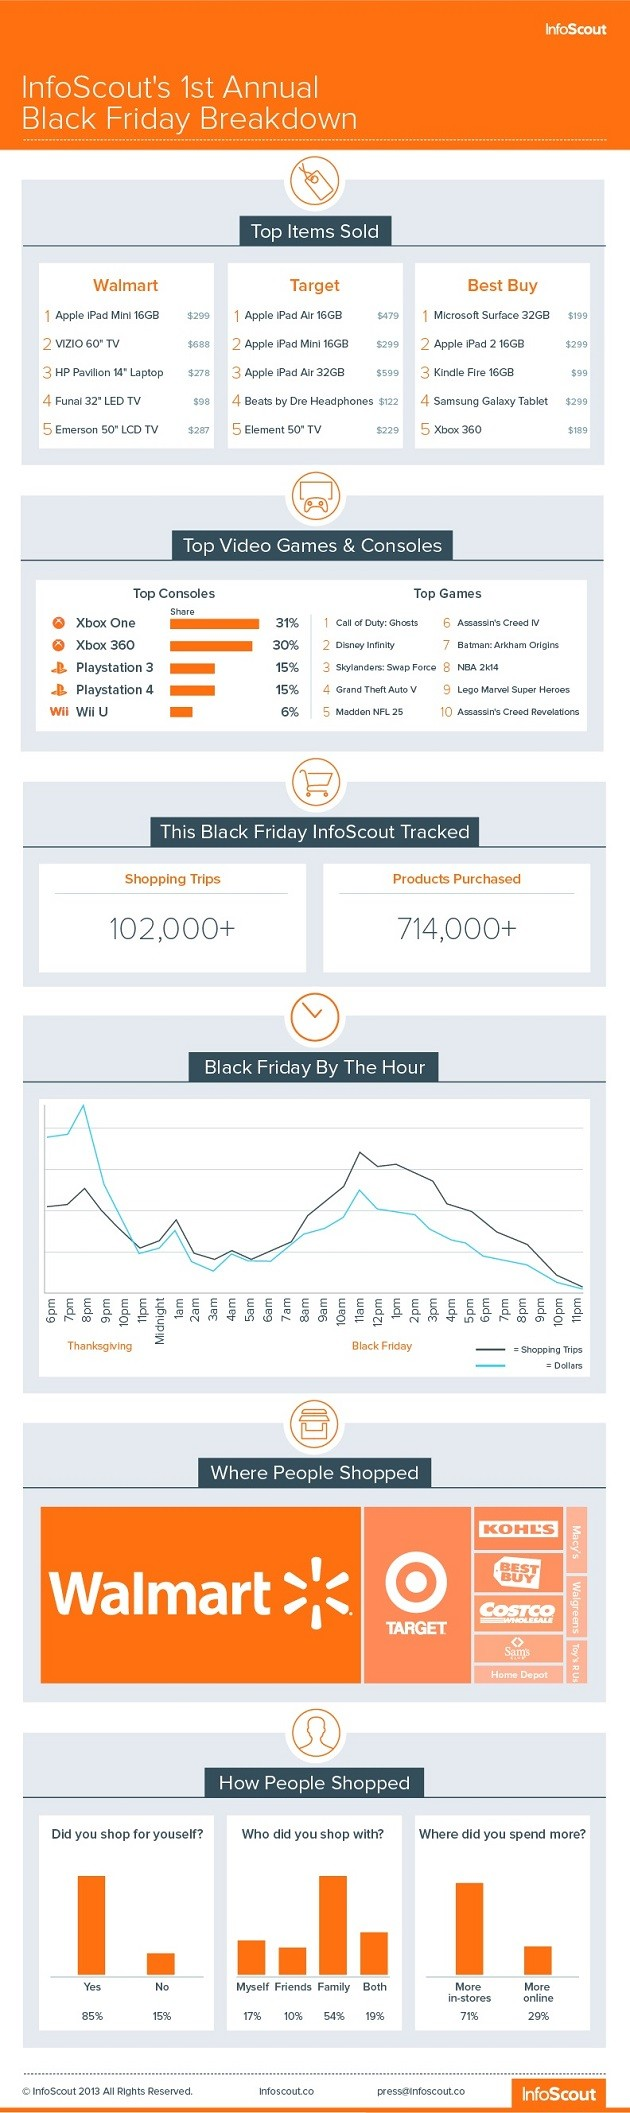 409692-black-friday-infographic